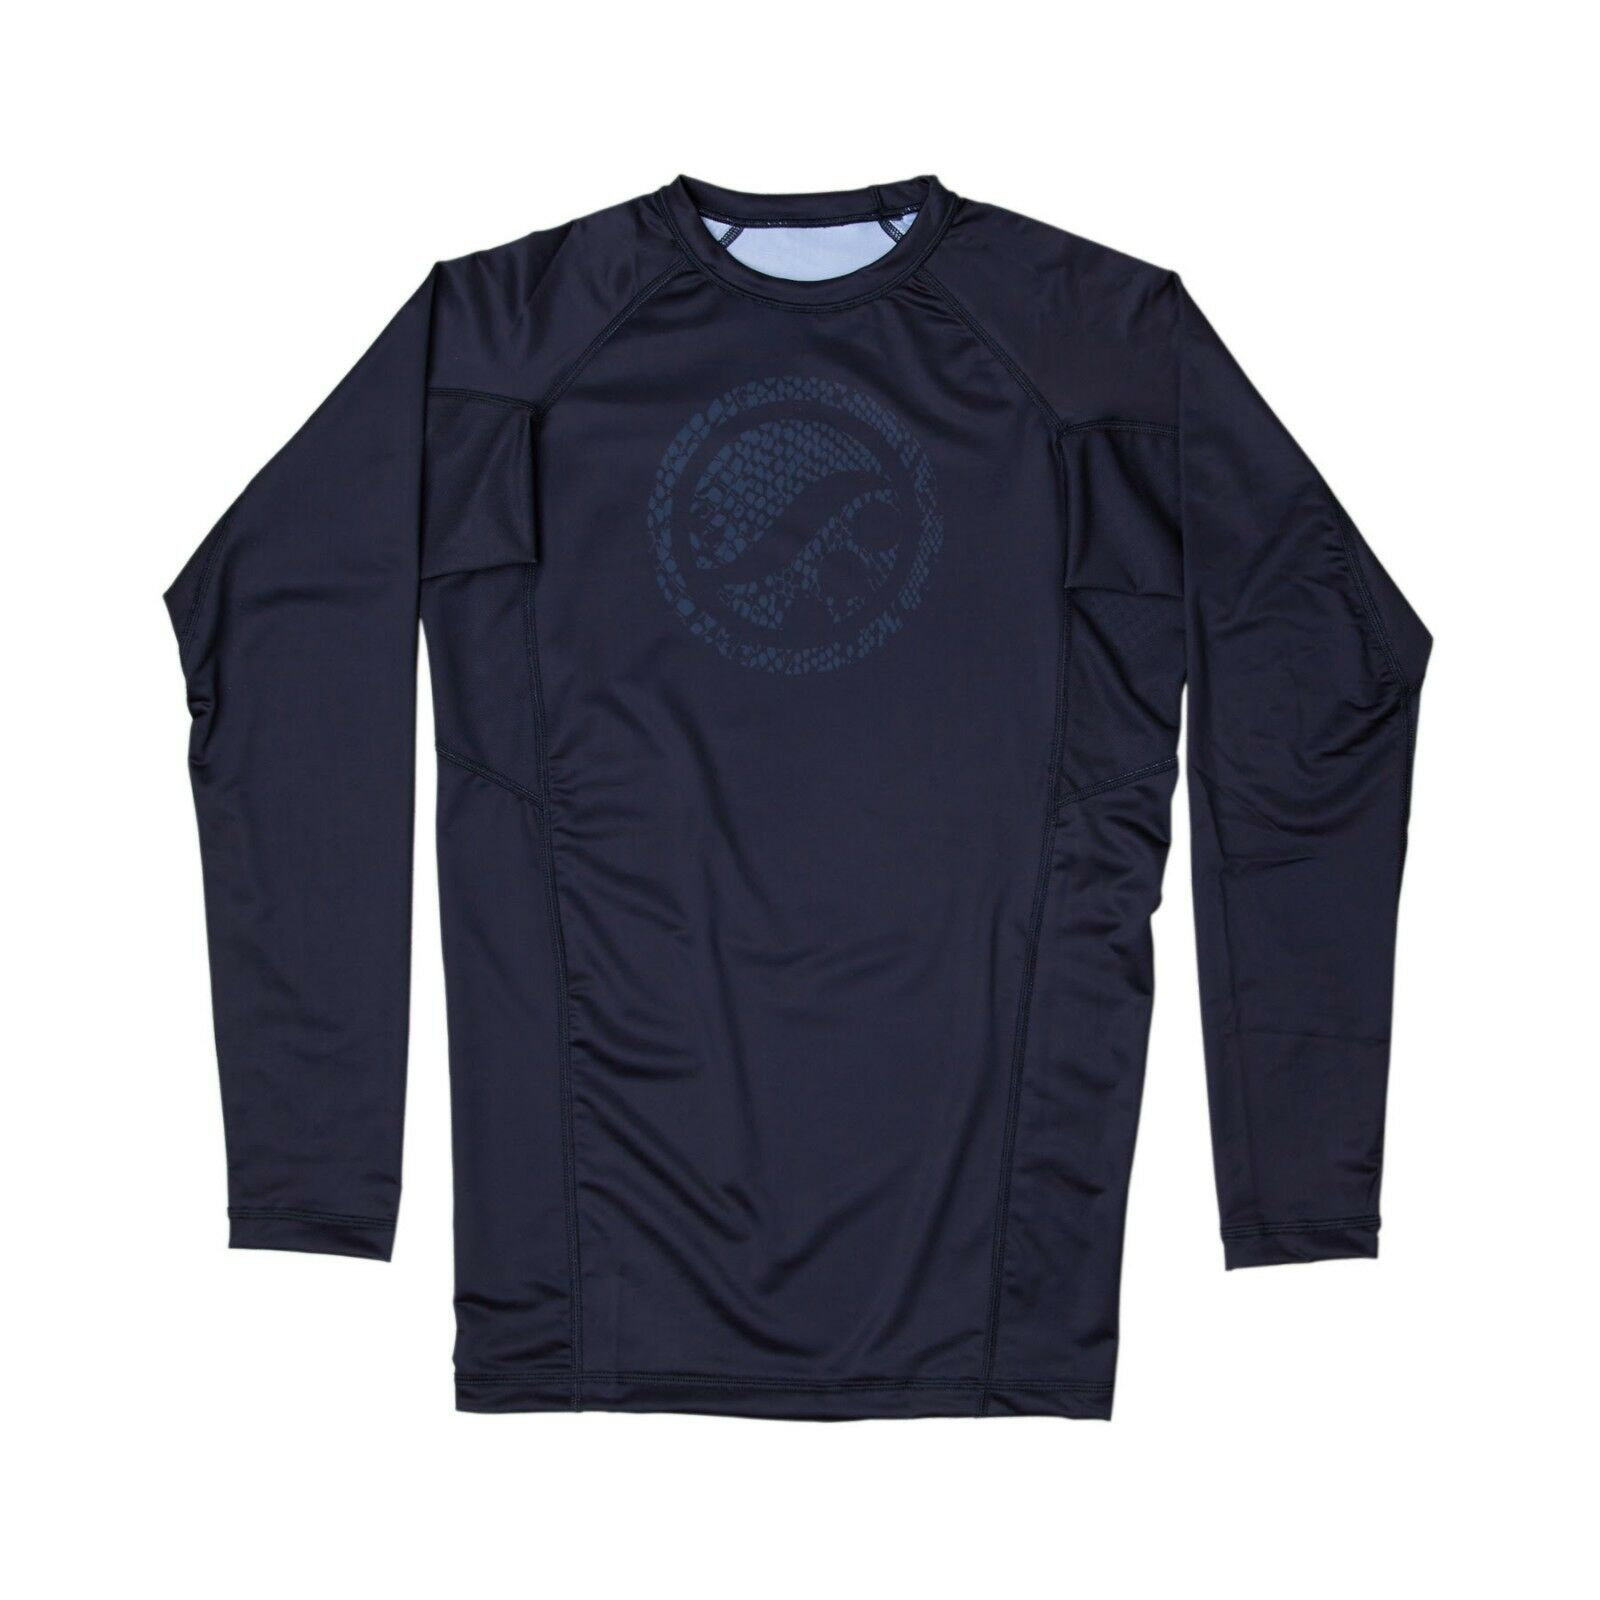 ShoyGoldll Snakez Rash Guard Ls Nuovo Guma Exclusive